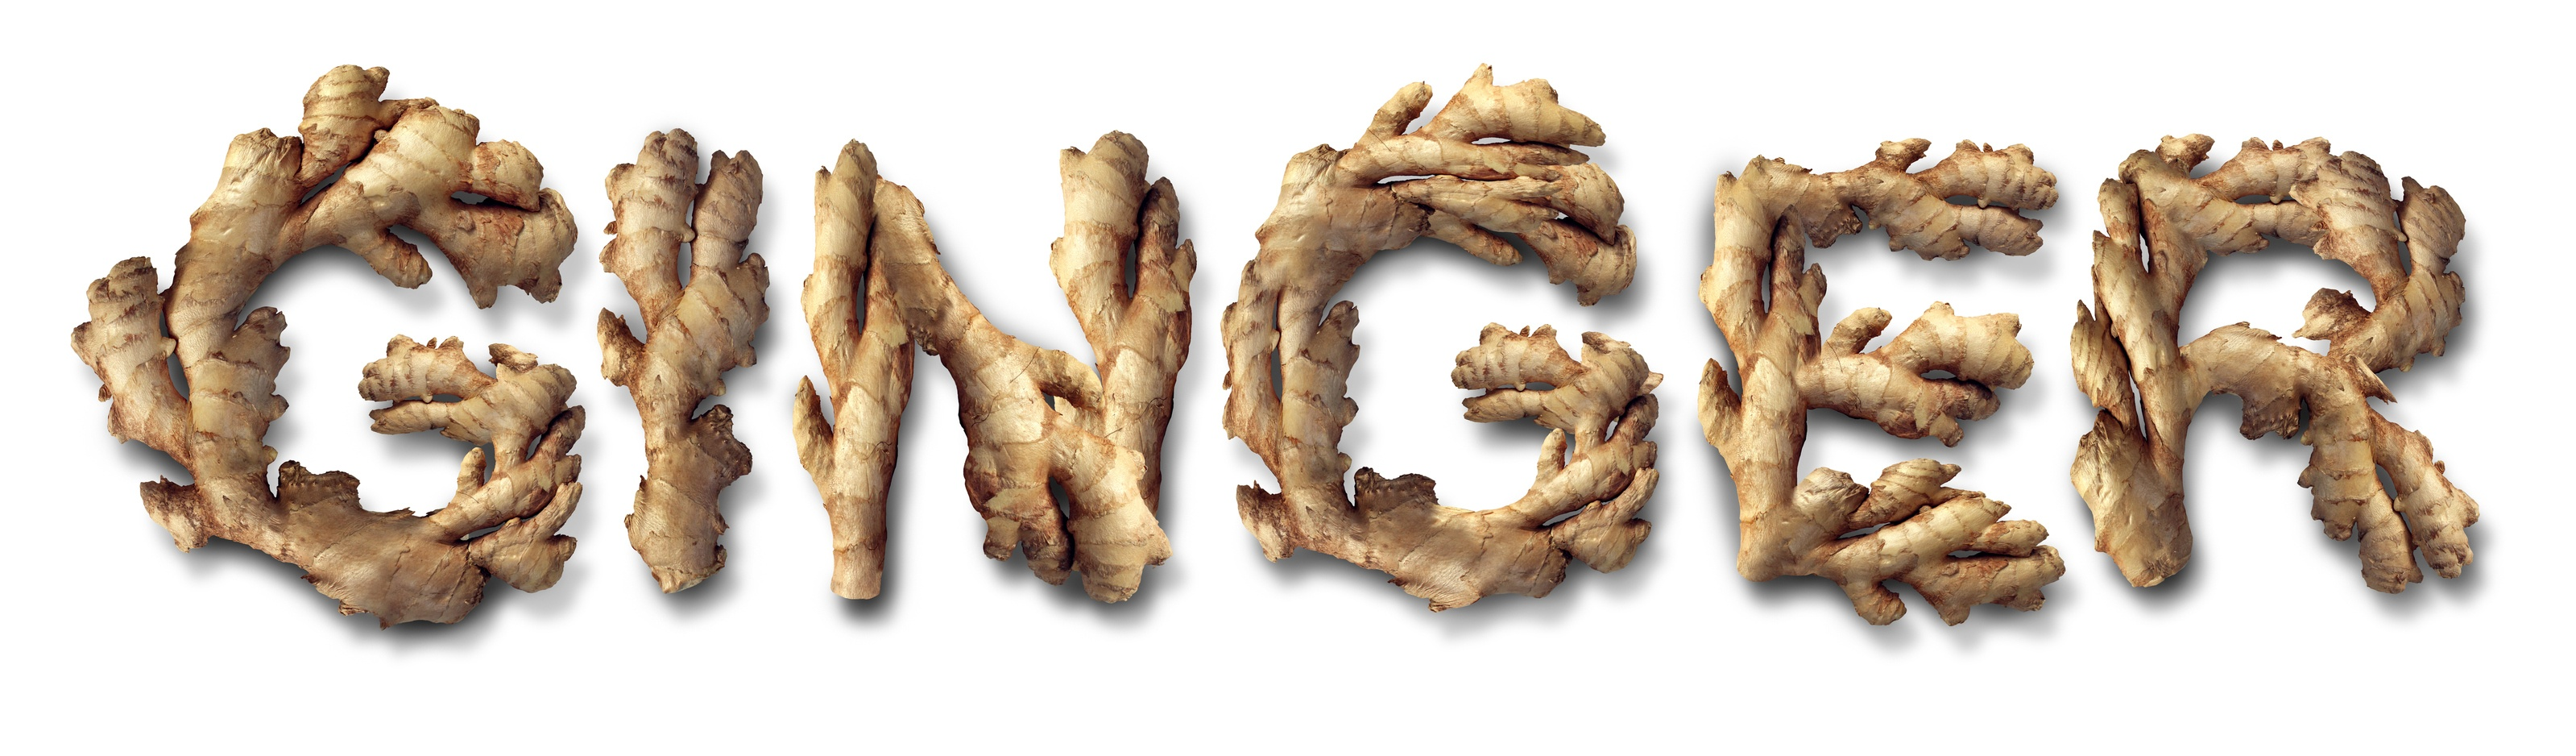 Ginger root ready for pressing into essential oils